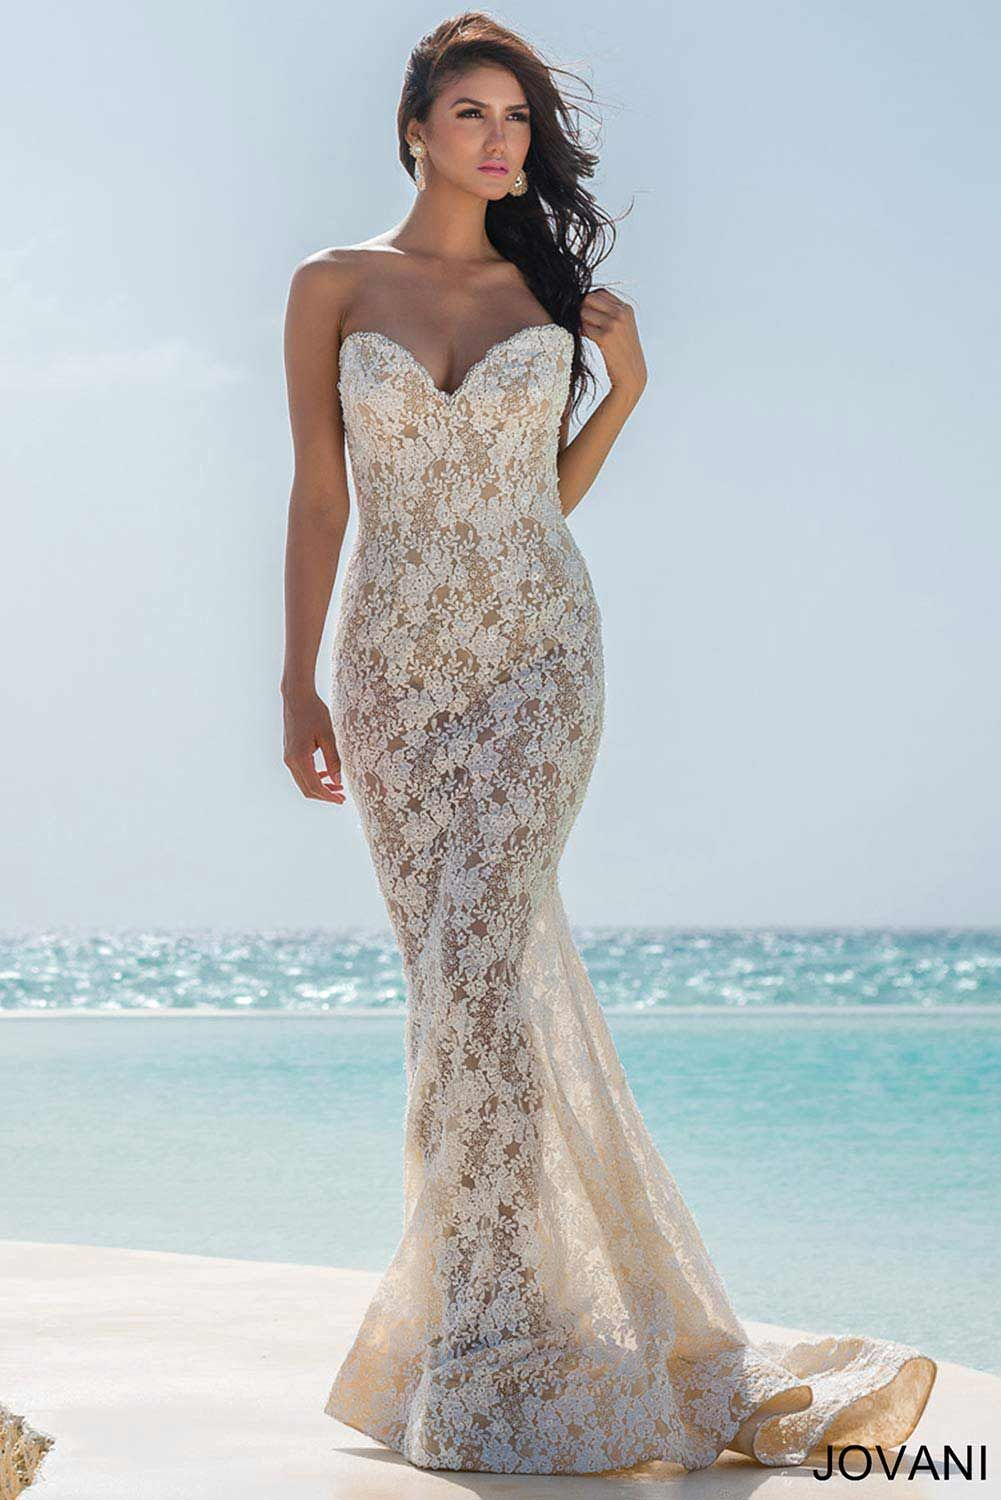 Lace Strapless Dress 22210 | Cool stuff to buy | Pinterest ...